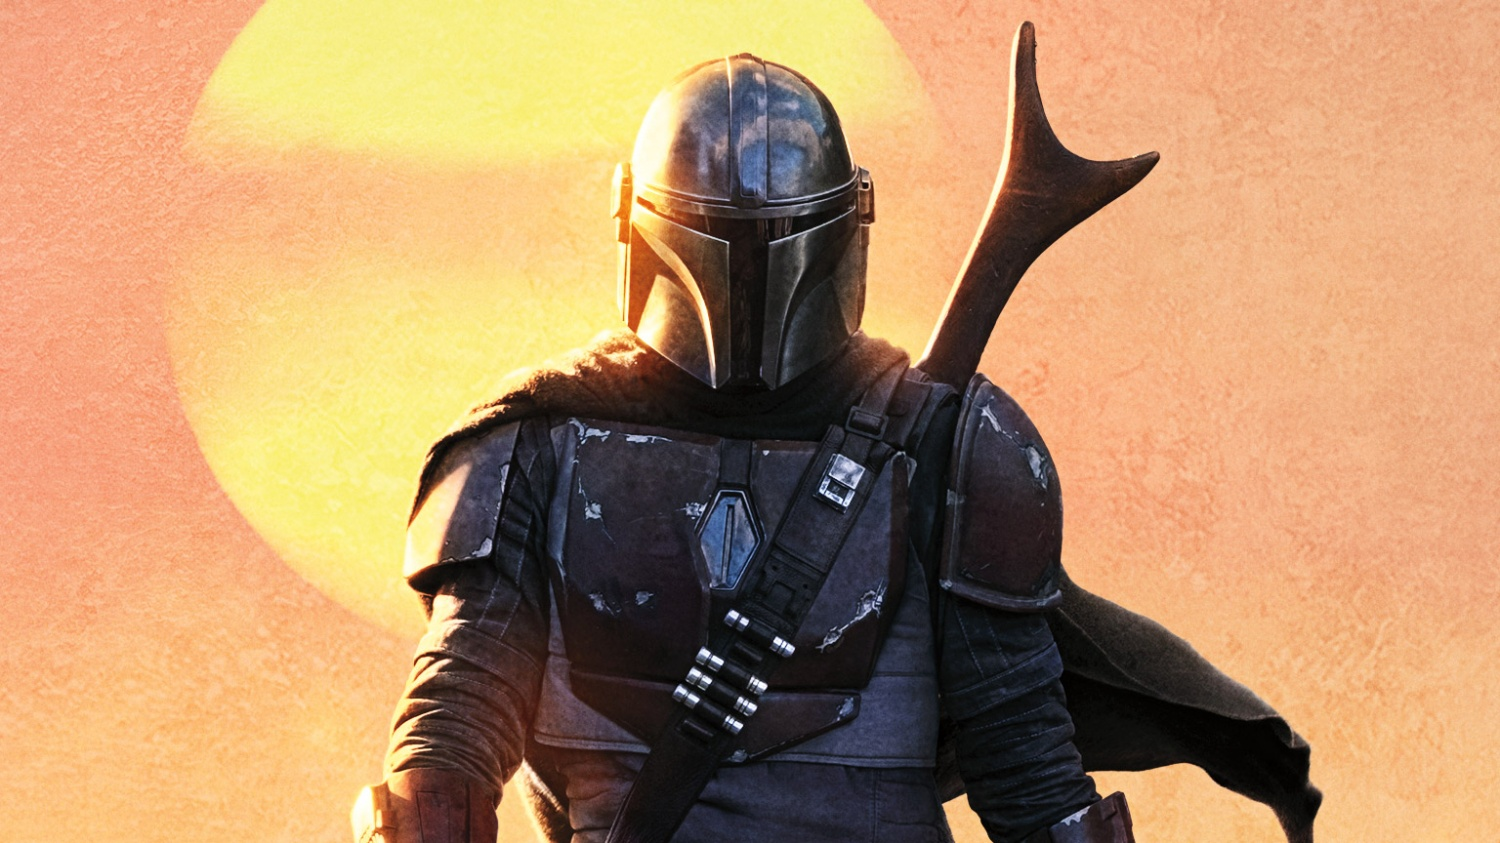 mandalorian season 2 - photo #3